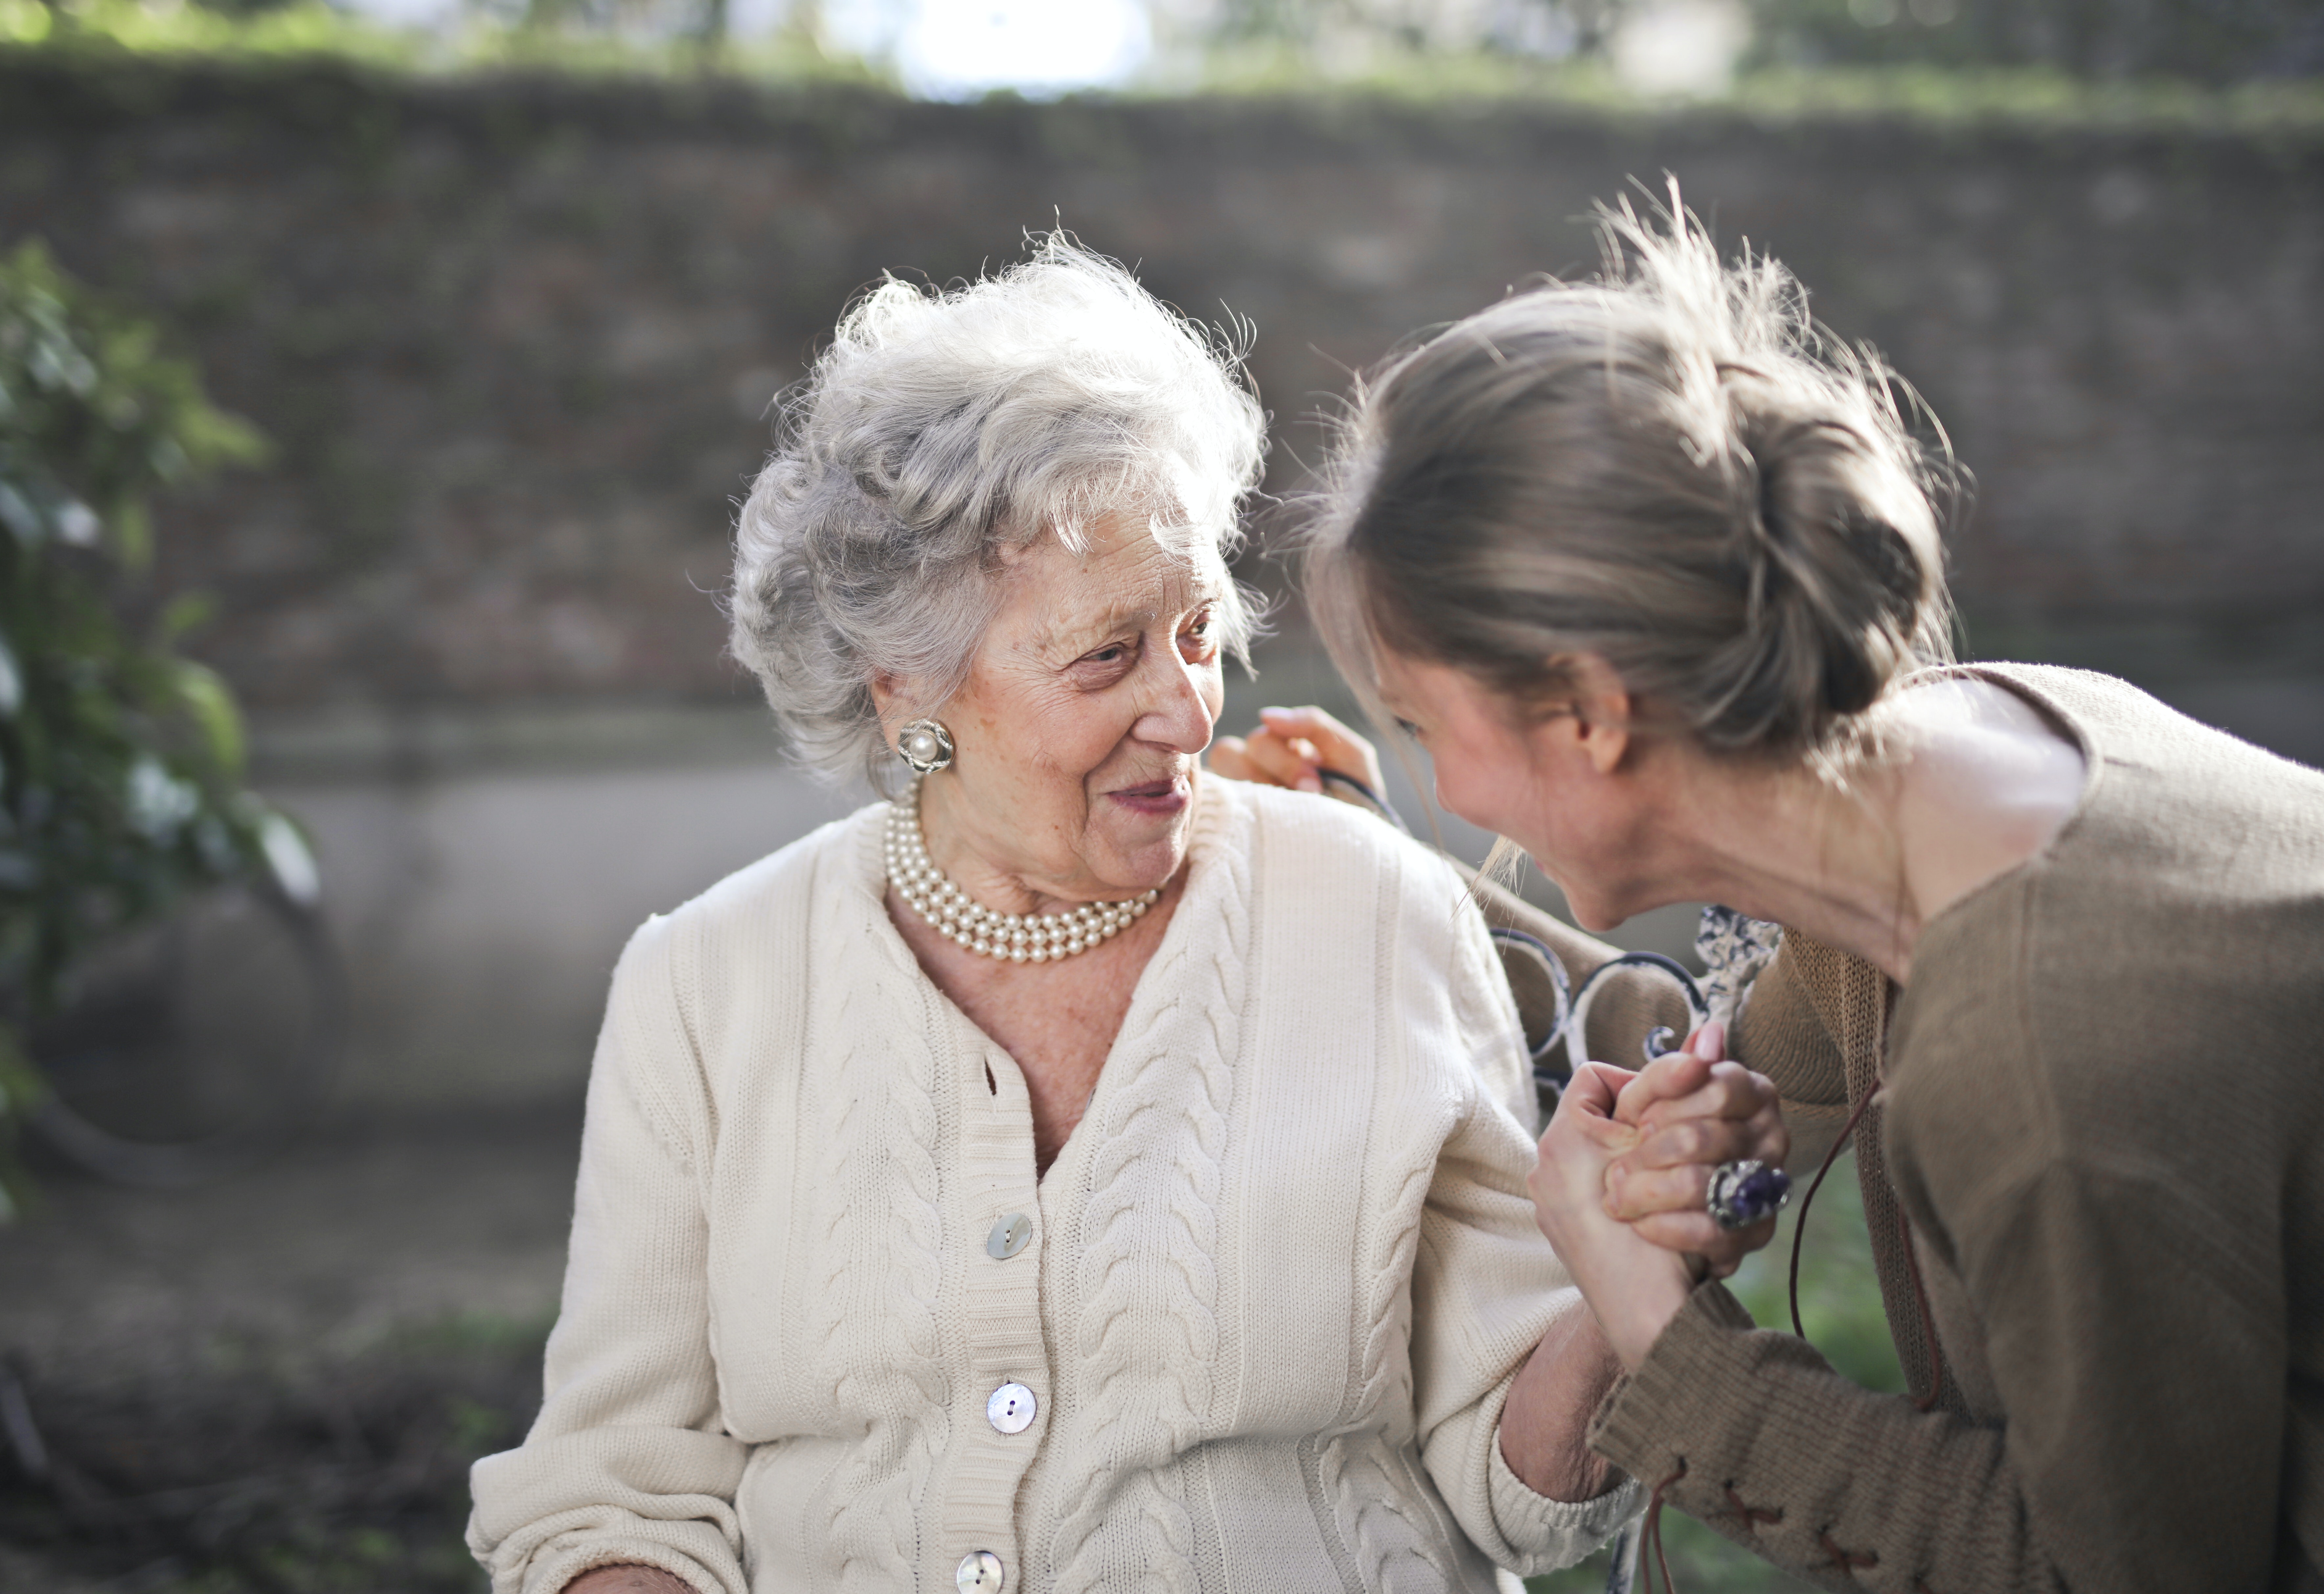 Ageism in the age of coronavirus